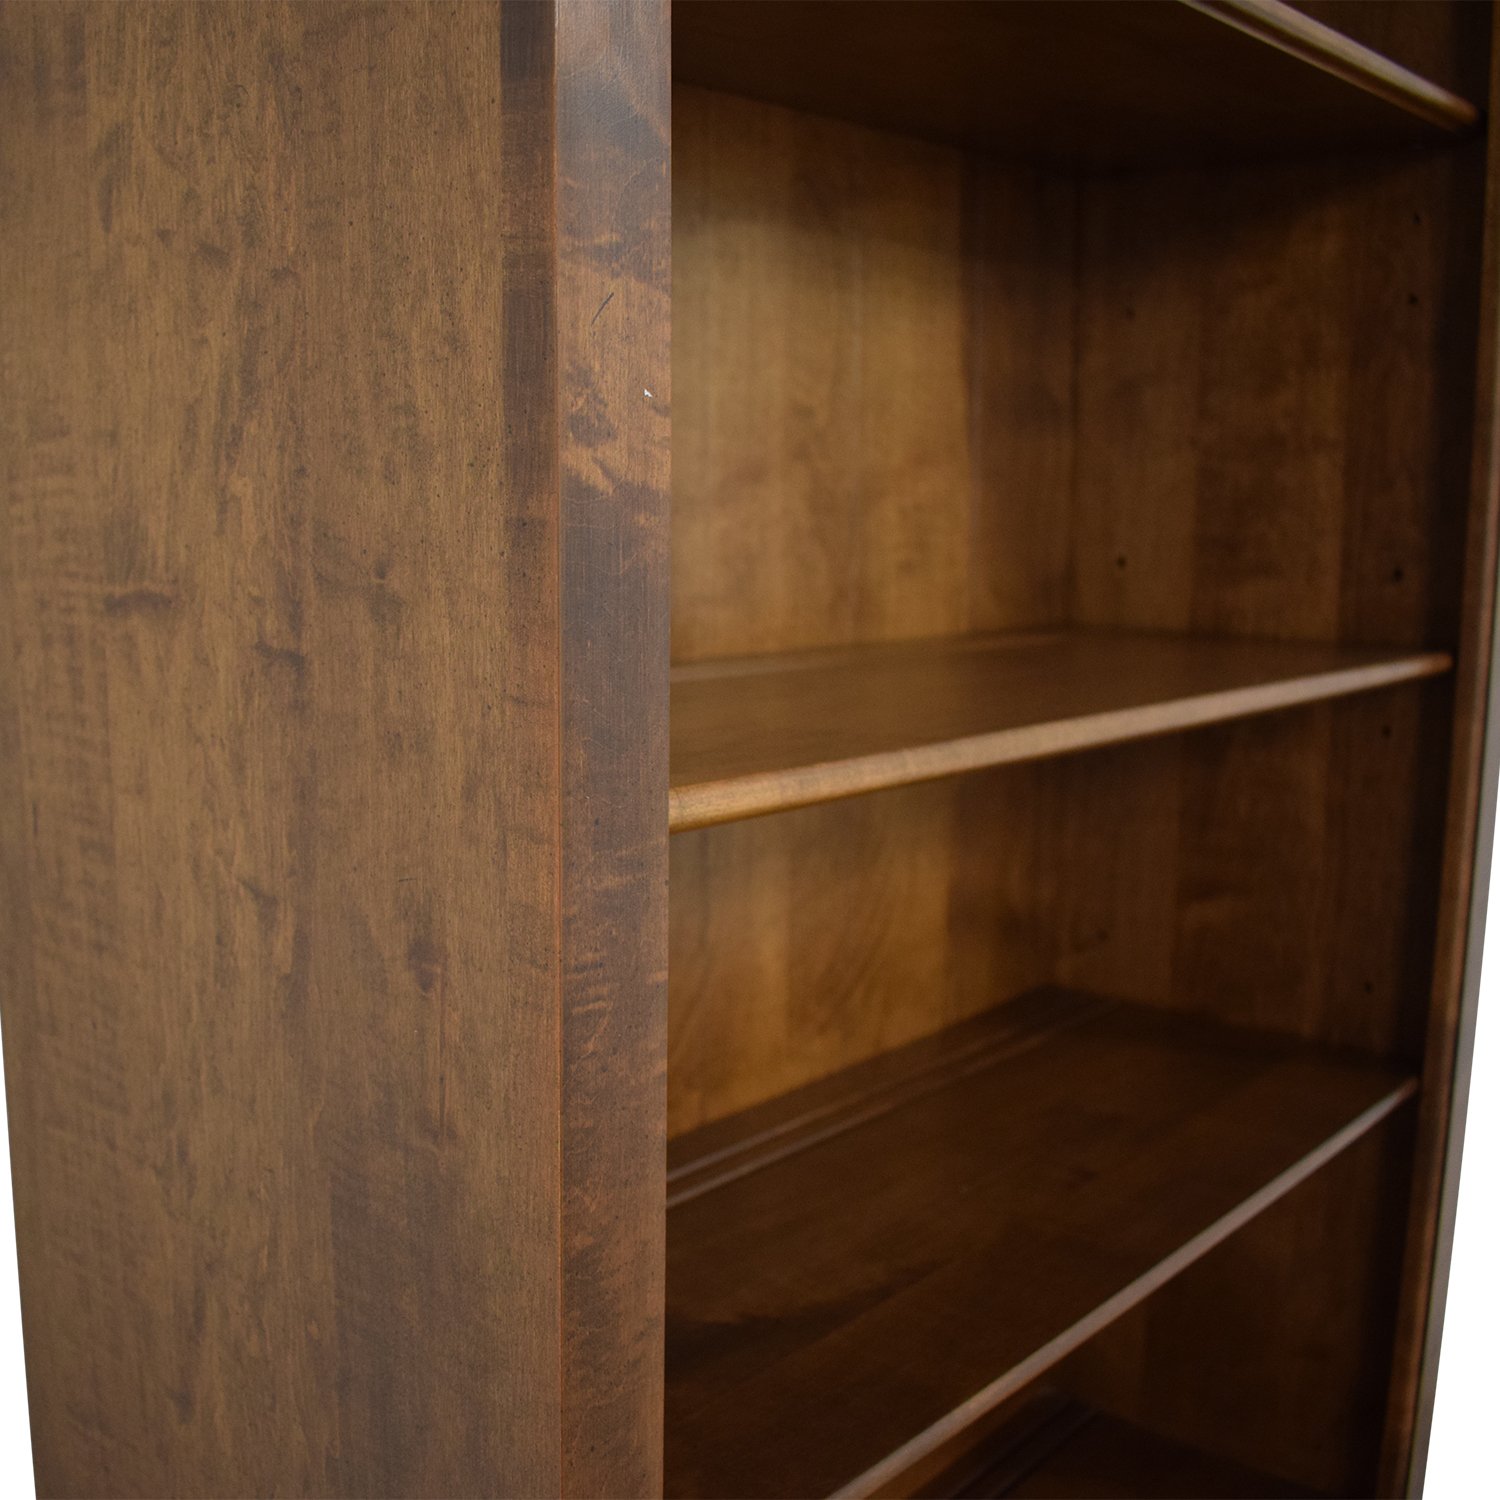 Ethan Allen Ethan Allen Bookcase with Drawers